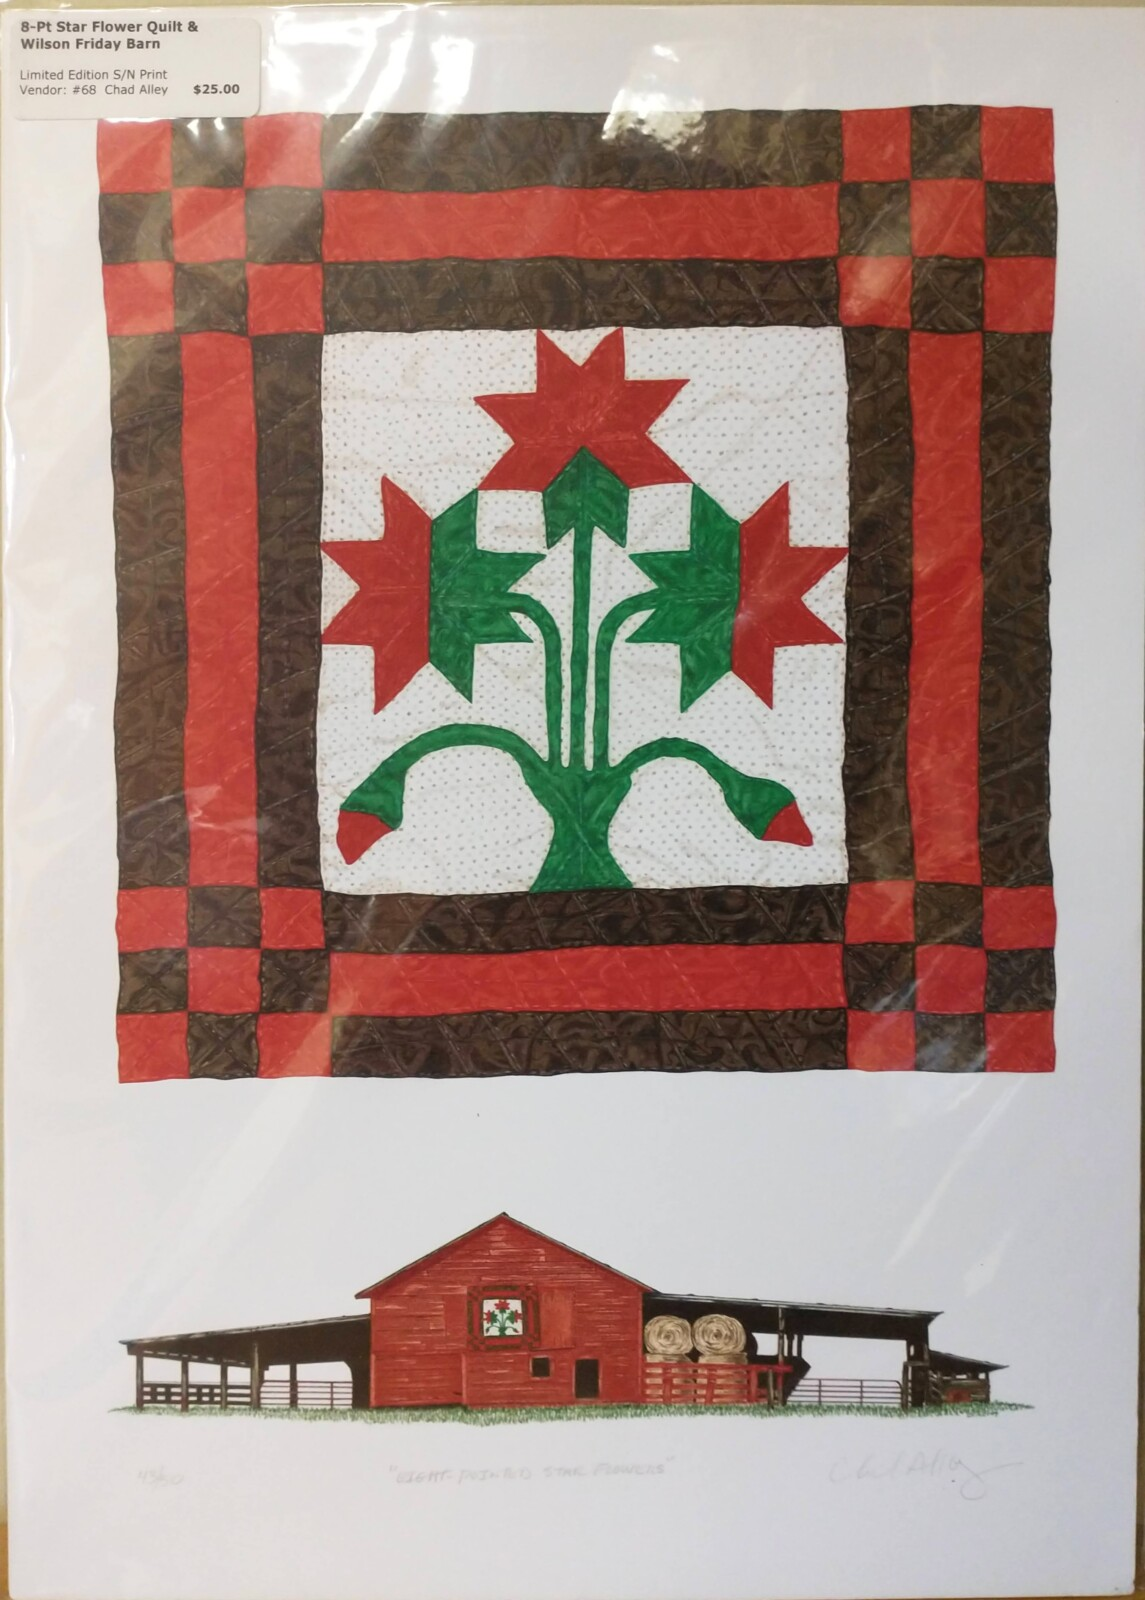 8-Pt Star Flower Quilt & Wilson Friday Barn Print